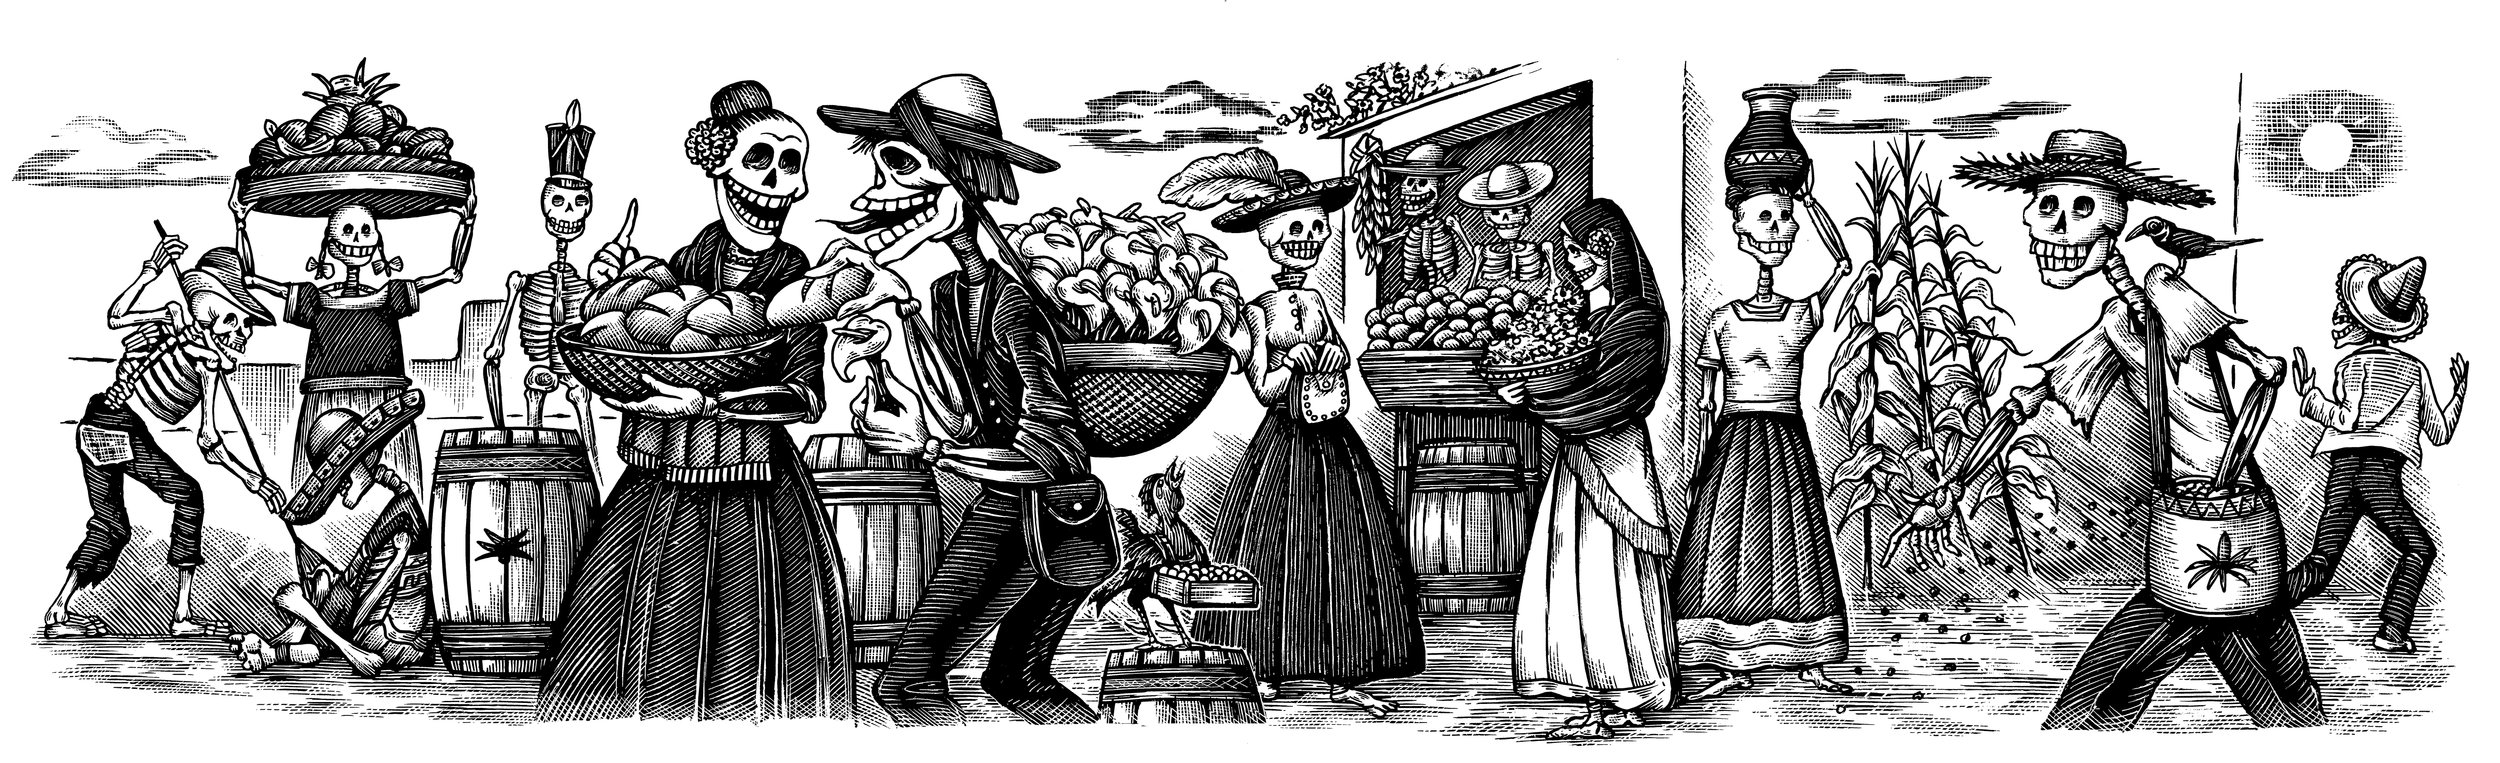 "The label art for Espolòn Tequila Reposado, ""Recuerdo"", inspired by the work of iconic Mexican printmaker, Jose Guadalupe Posada"